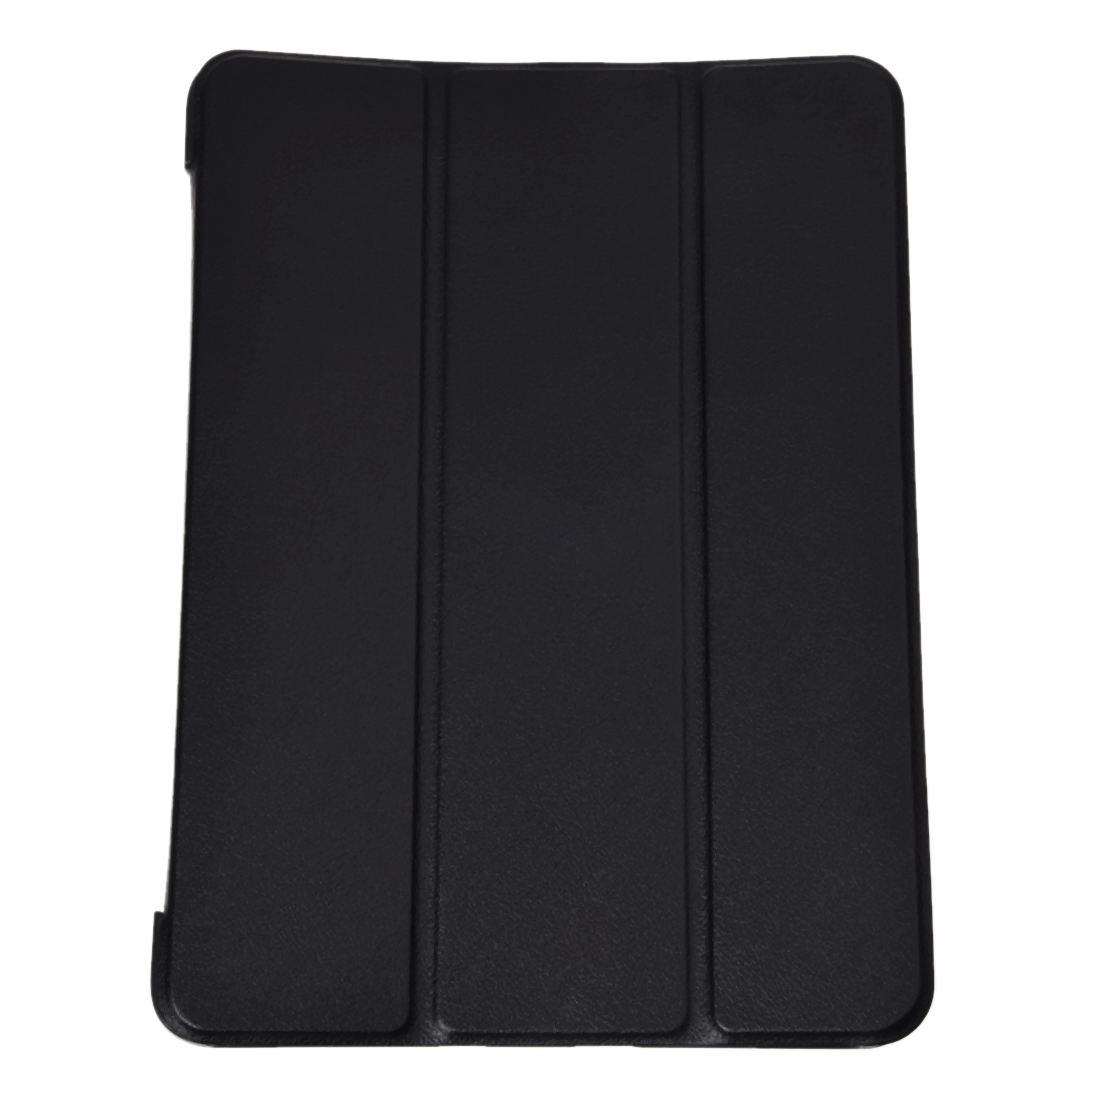 Slim Smart Cover Case For Samsung Galaxy Tab S3 8.0-Inch Tablet(Black)